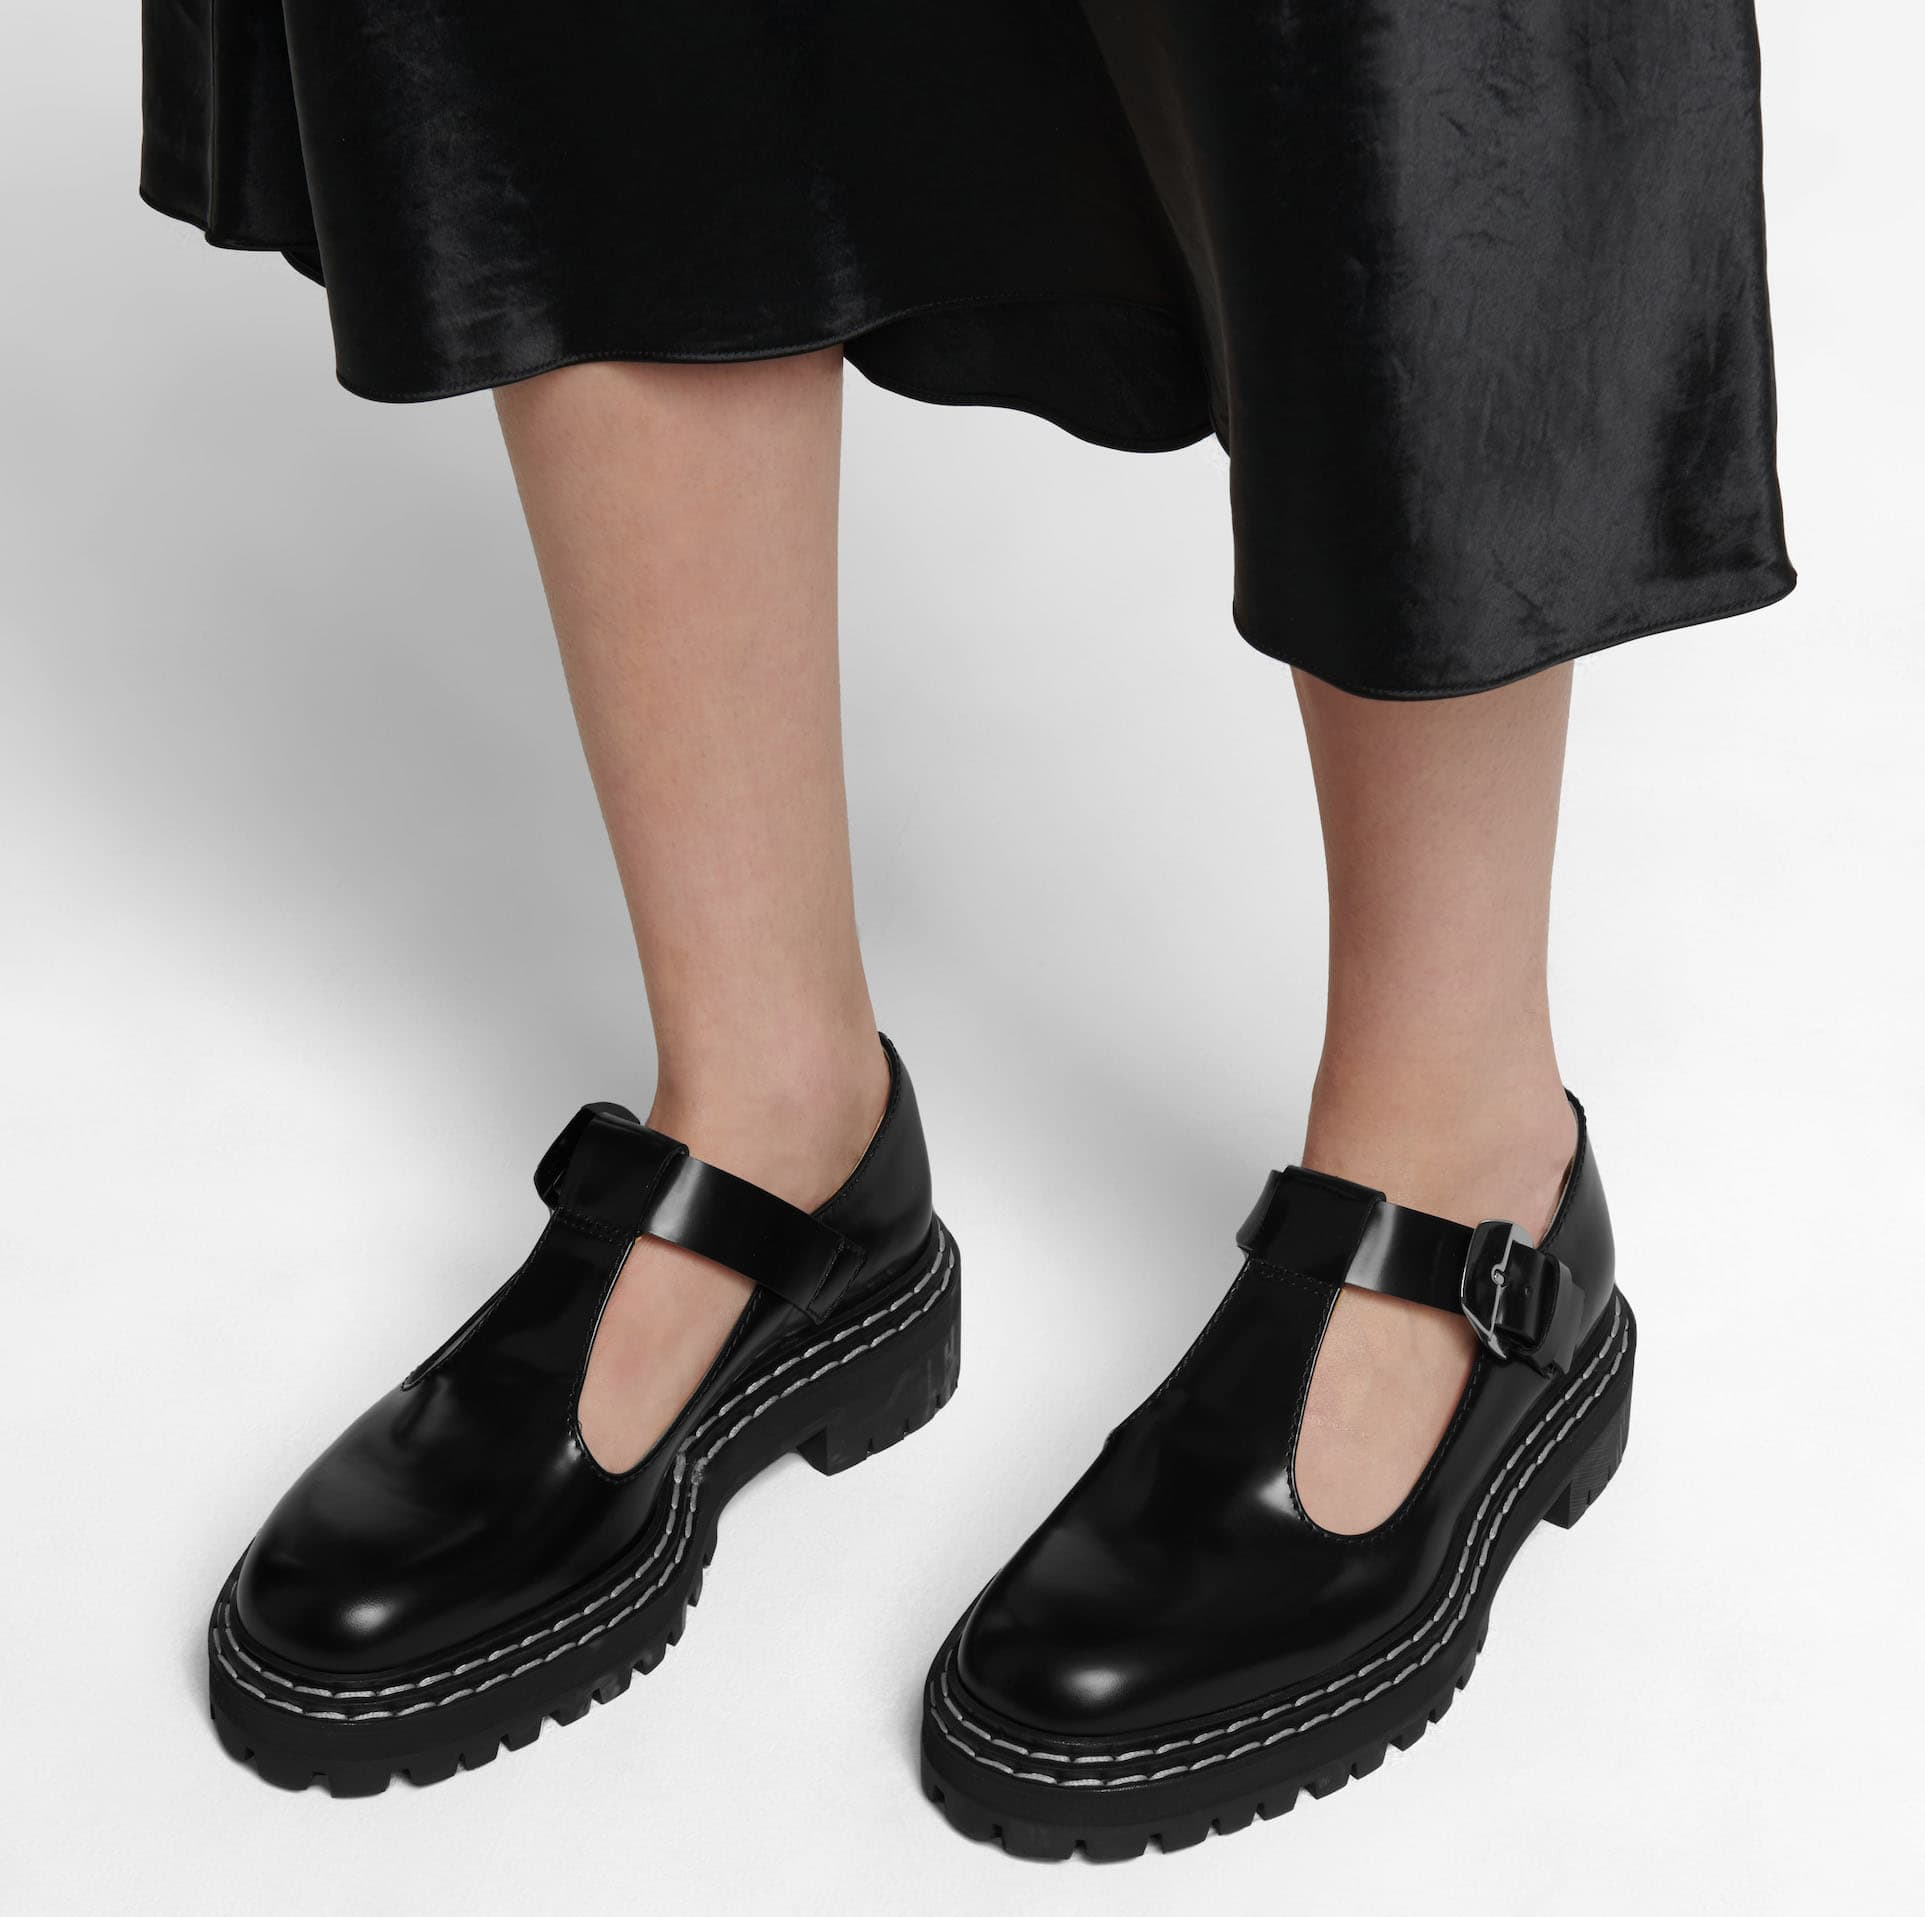 These Proenza Schouler Mary Janes feature wide straps and chunky lug soles